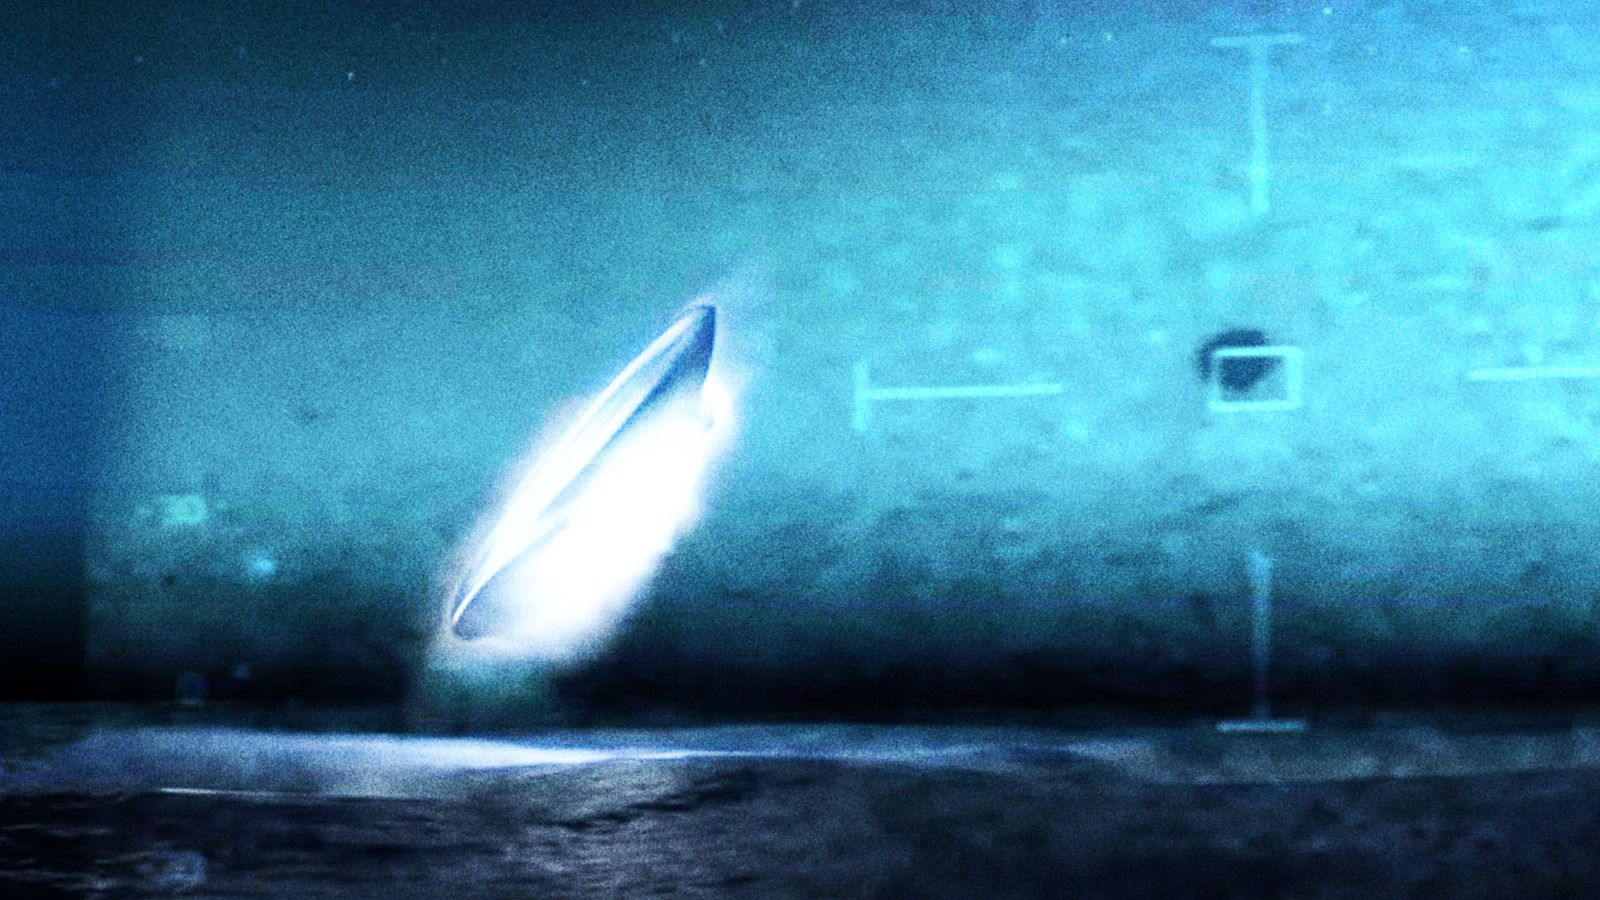 👽 Mysterious UFO Disappears Into Ocean in Newly Leaked Navy Video